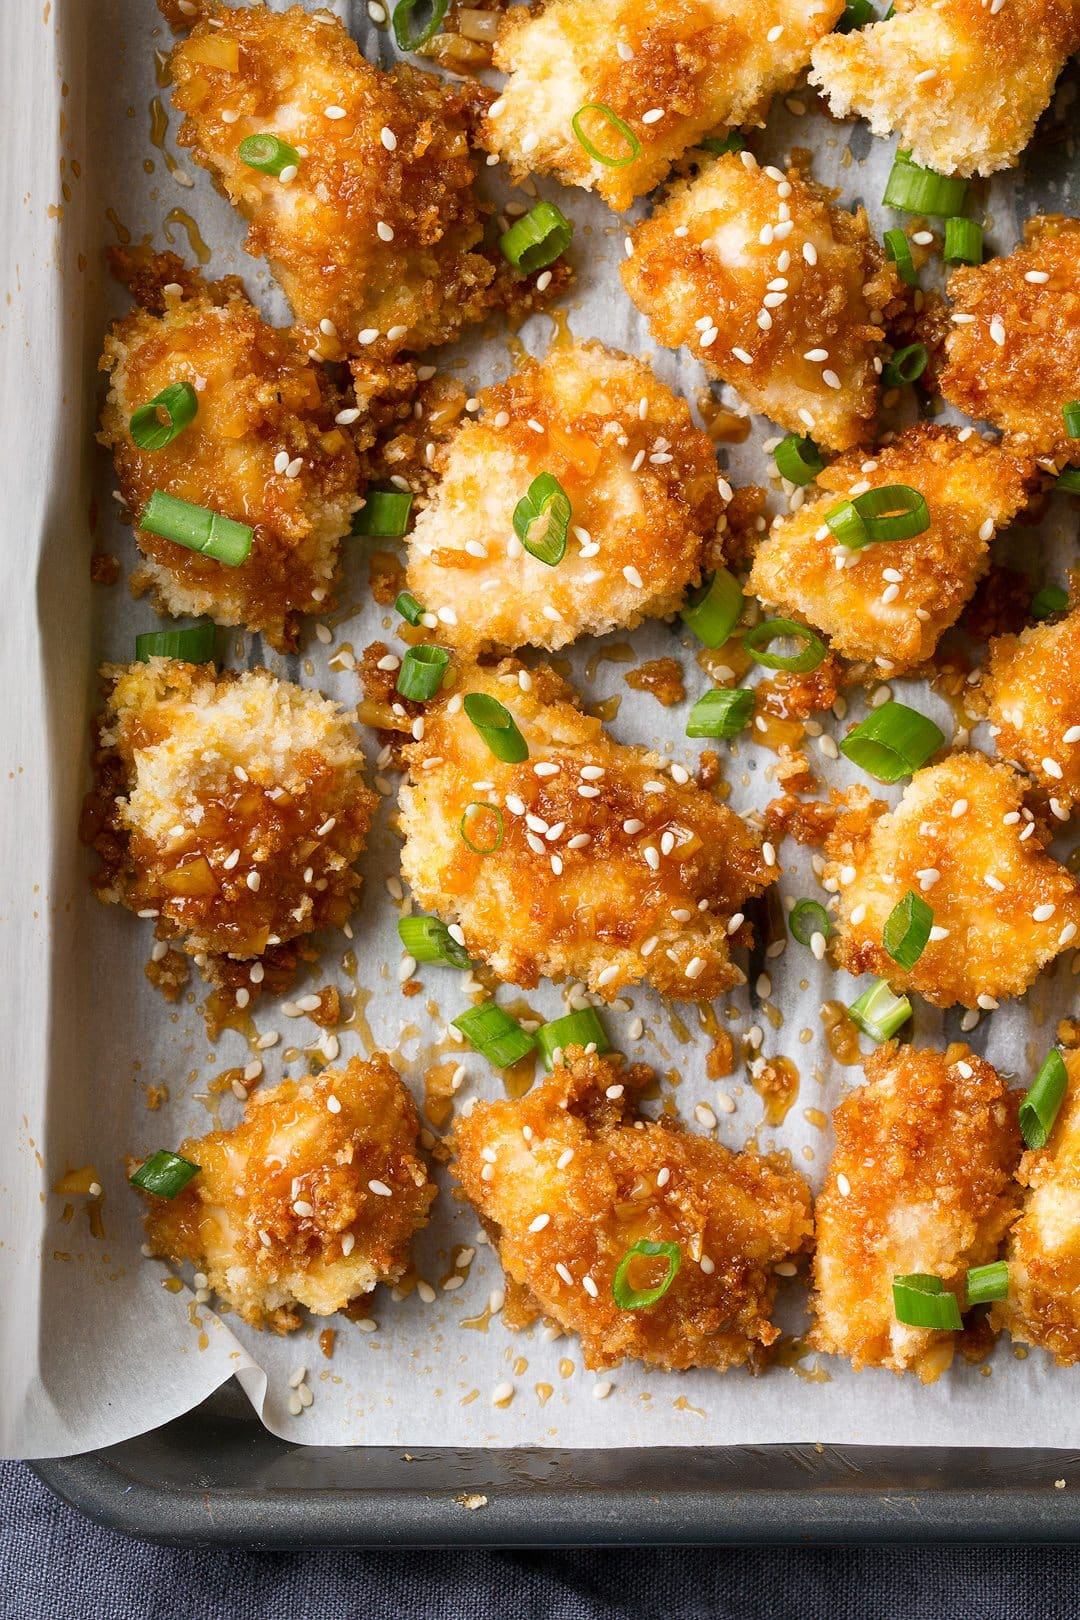 Close up image of honey garlic chicken to show texture of panko and sticky sauce.